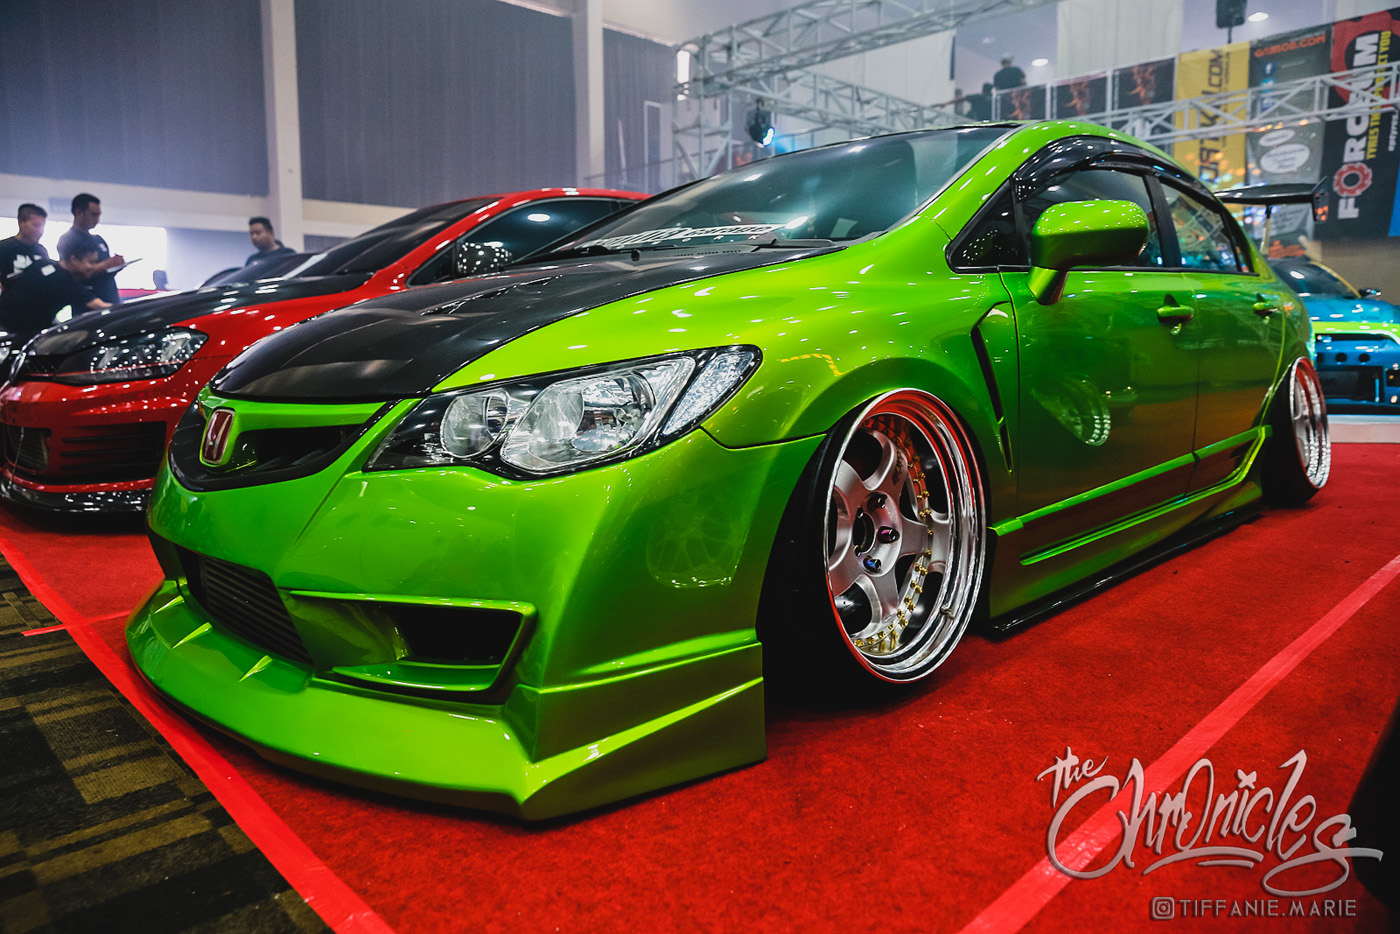 The Chronicles Vlog 2016 #12 (Part 1): HIN Jakarta 2016 Final Battle…